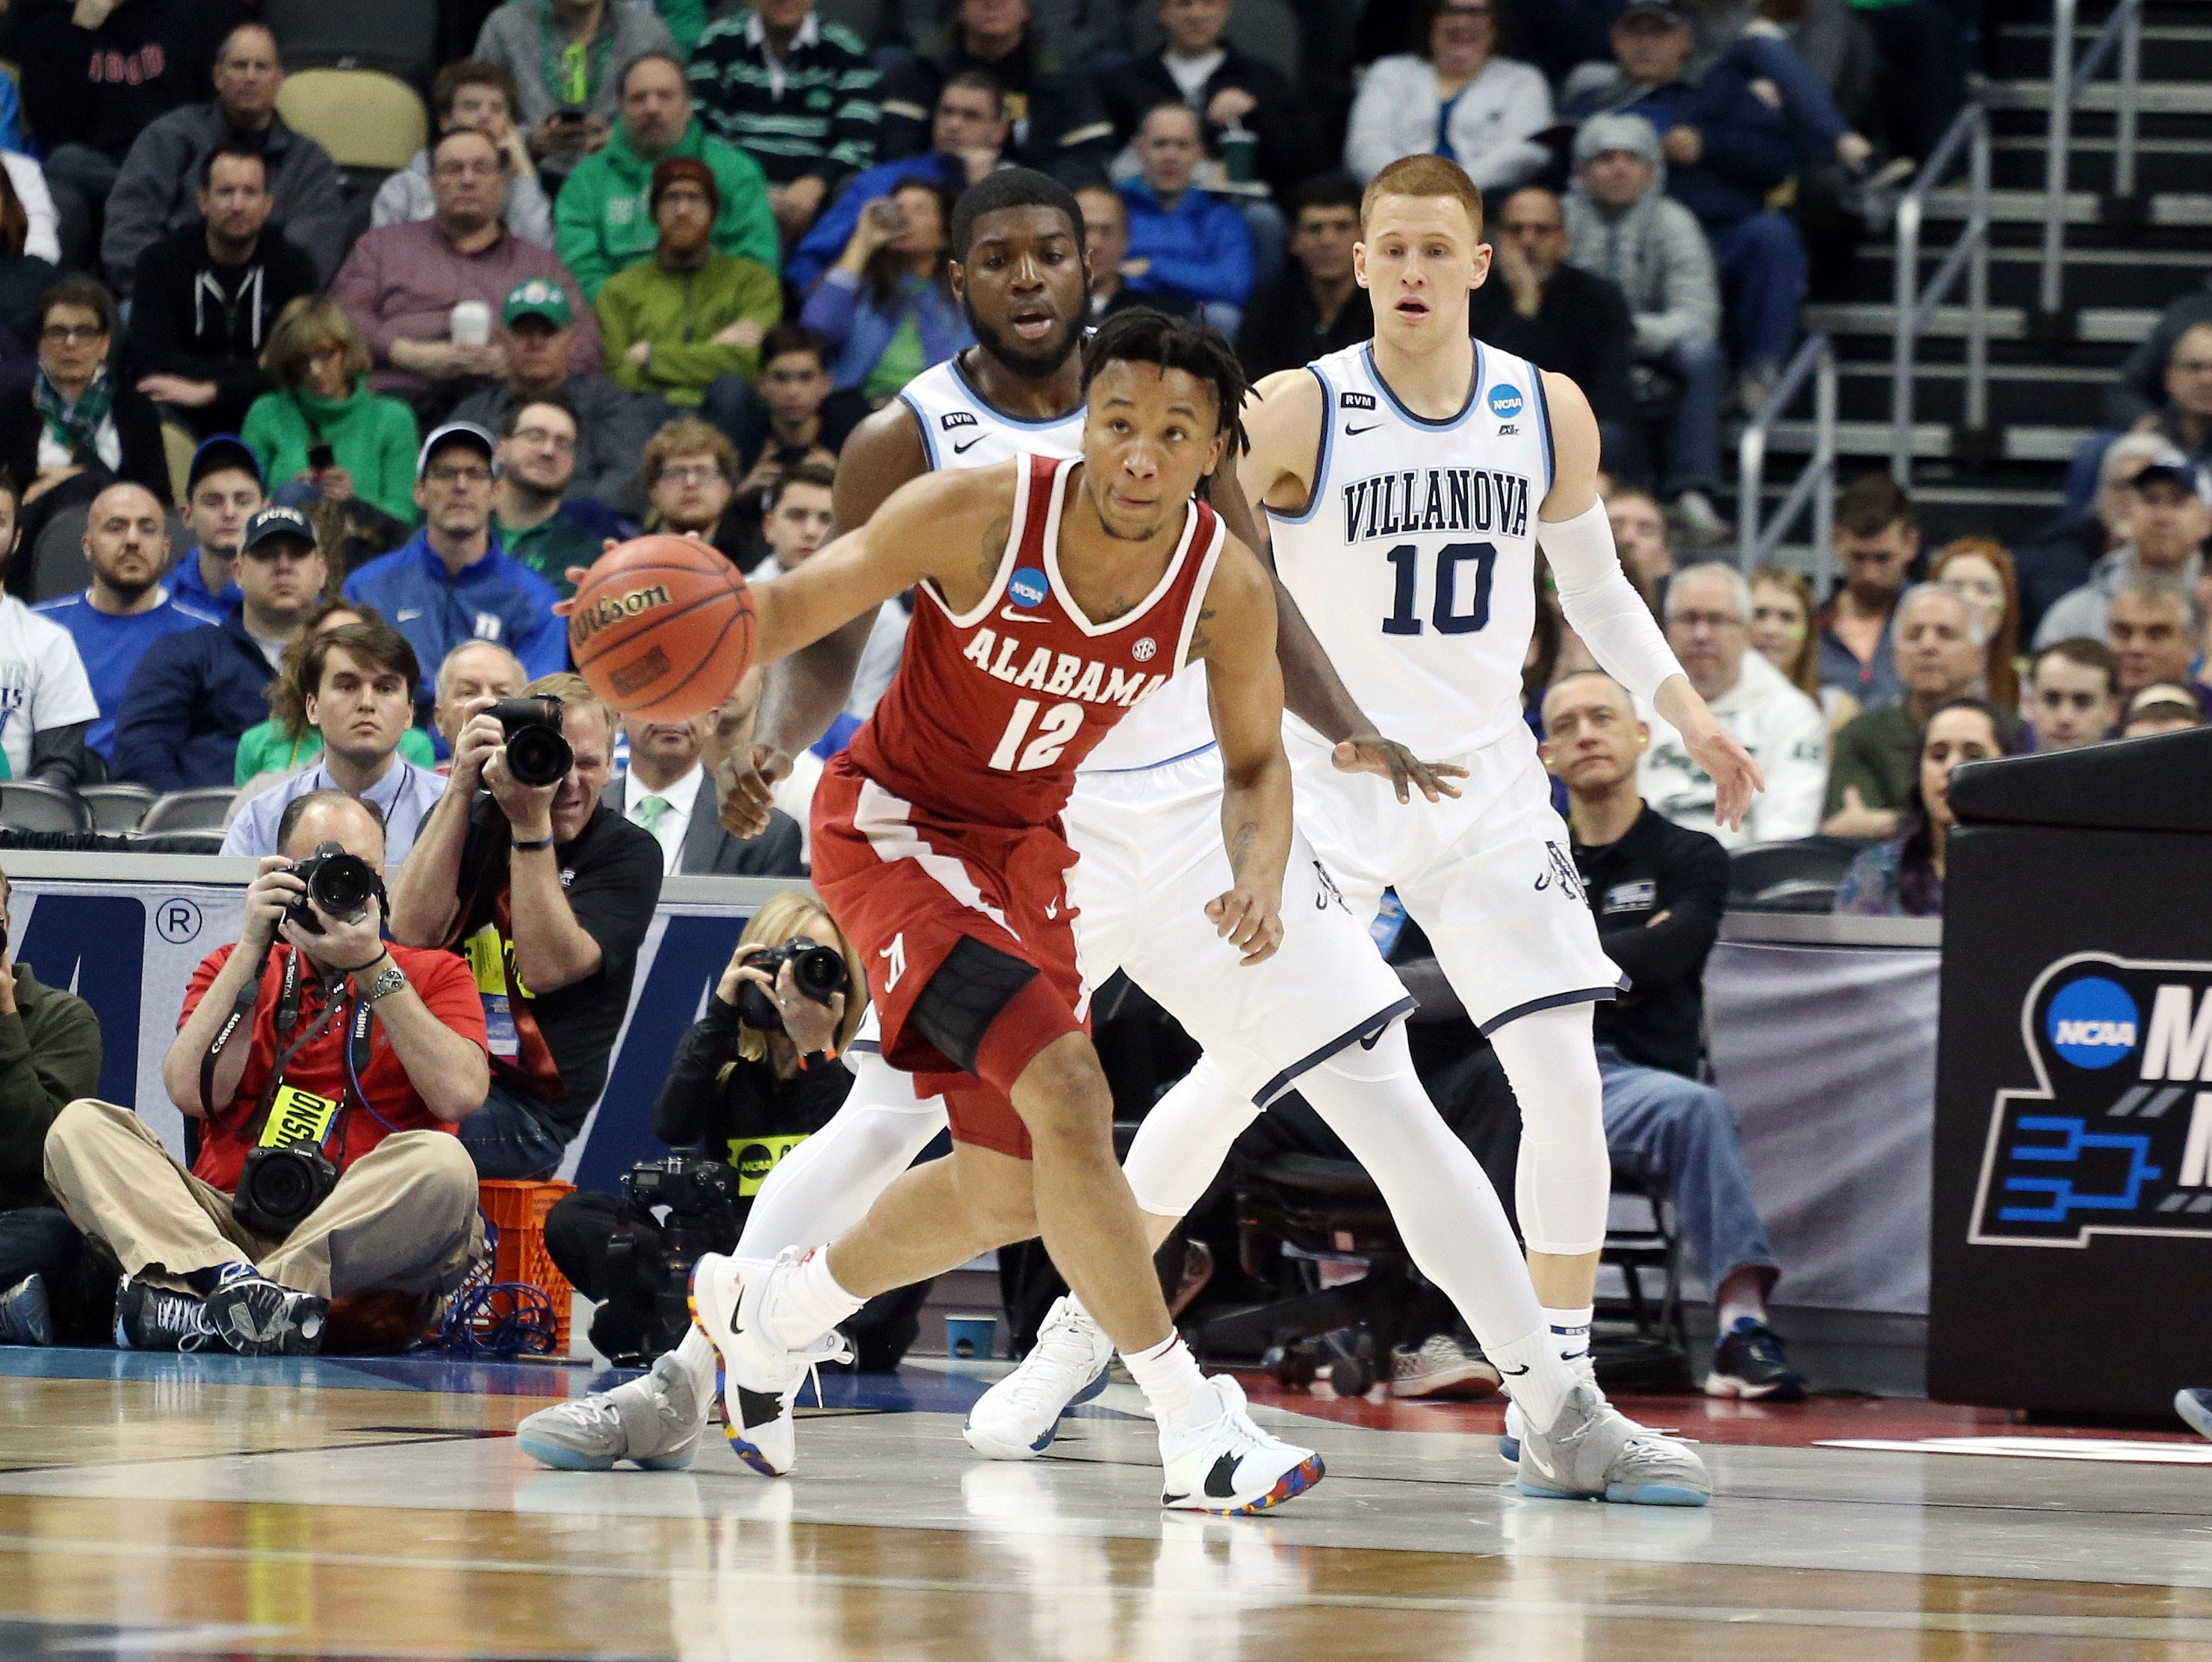 Mar 17, 2018; Pittsburgh, PA, USA;  Alabama Crimson Tide guard Dazon Ingram (12) handles the ball as Villanova Wildcats forward Eric Paschall (4) and guard Donte DiVincenzo (10) defend during the first half in the second round of the 2018 NCAA Tournament at PPG Paints Arena. Villanova won 81-58. Mandatory Credit: Charles LeClaire-USA TODAY Sports